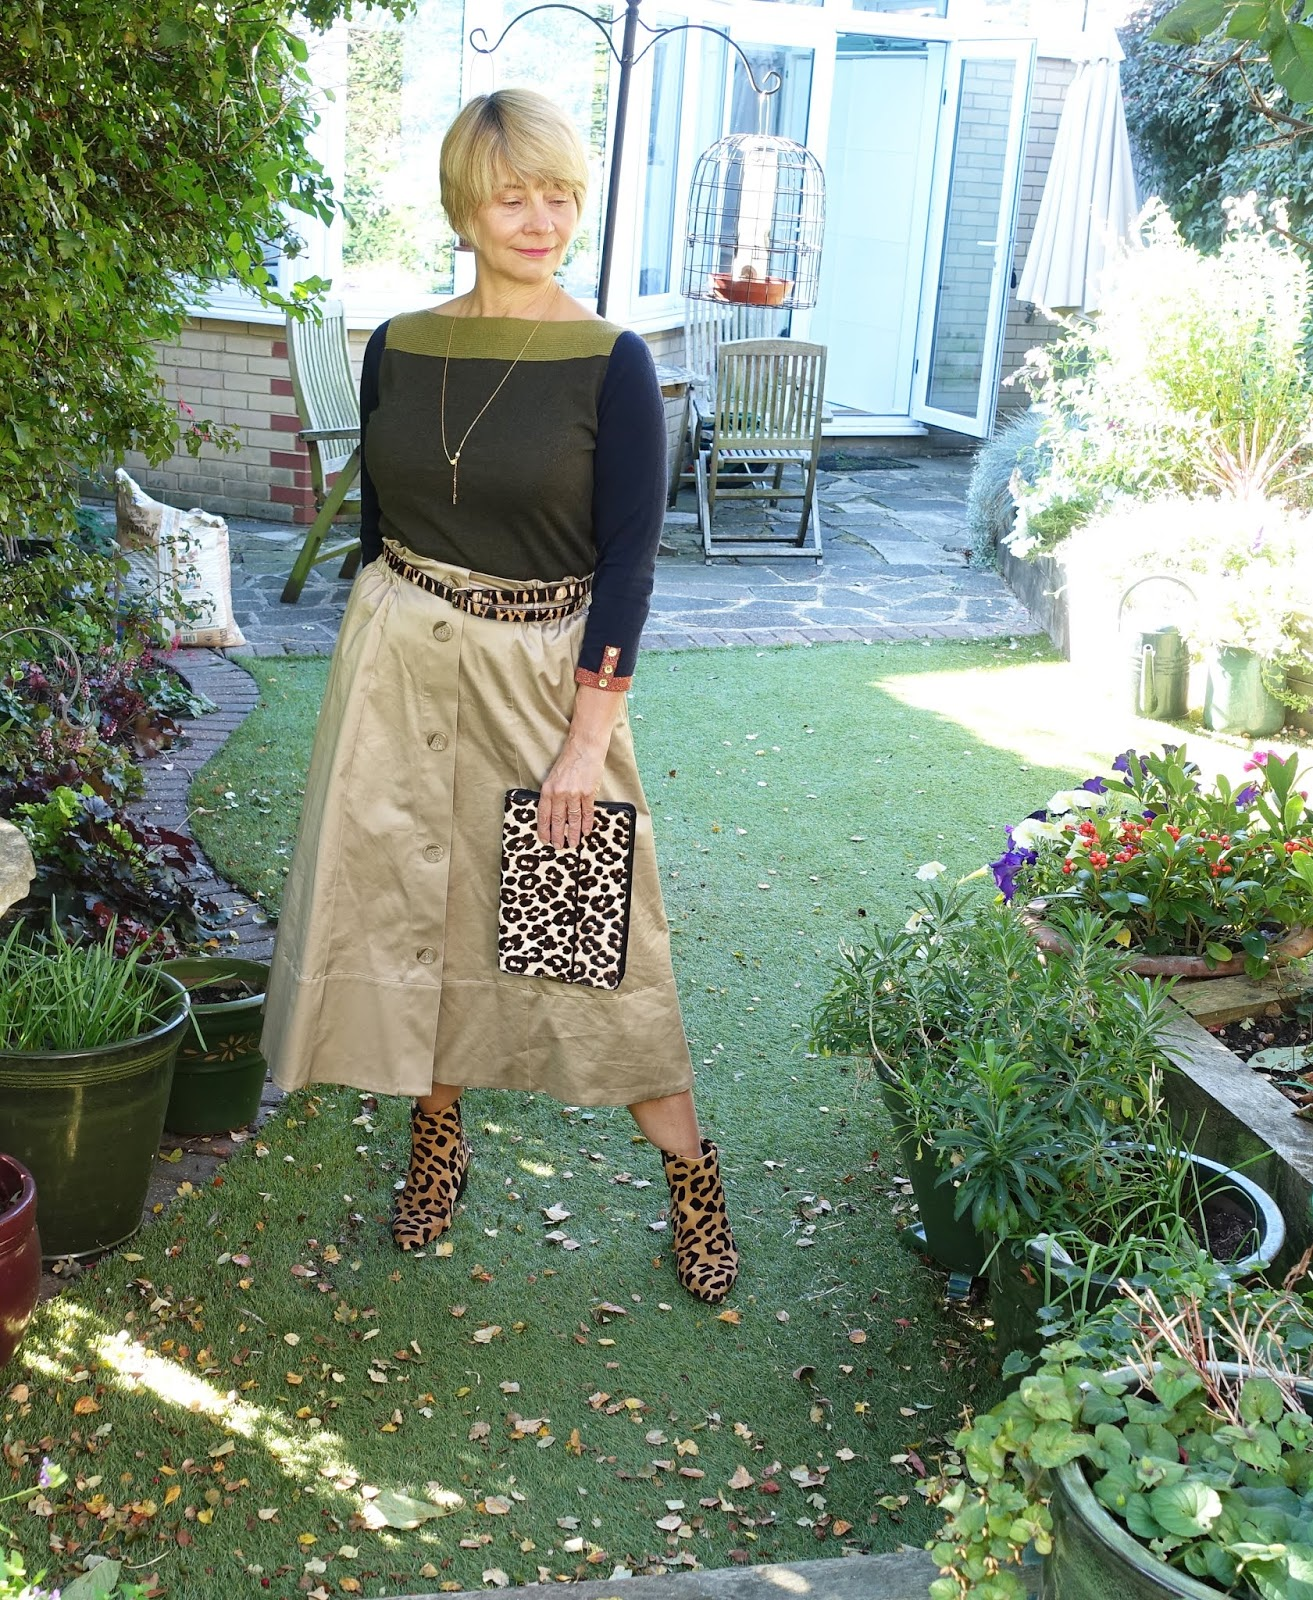 Stylish accessorizing with leopard from Is This Mutton? the blog for the over 45s. Supima camel skirt worn with green and bronze edged jumper with leopard print ankle boots from Office London, leopard clutch and belt from Next.